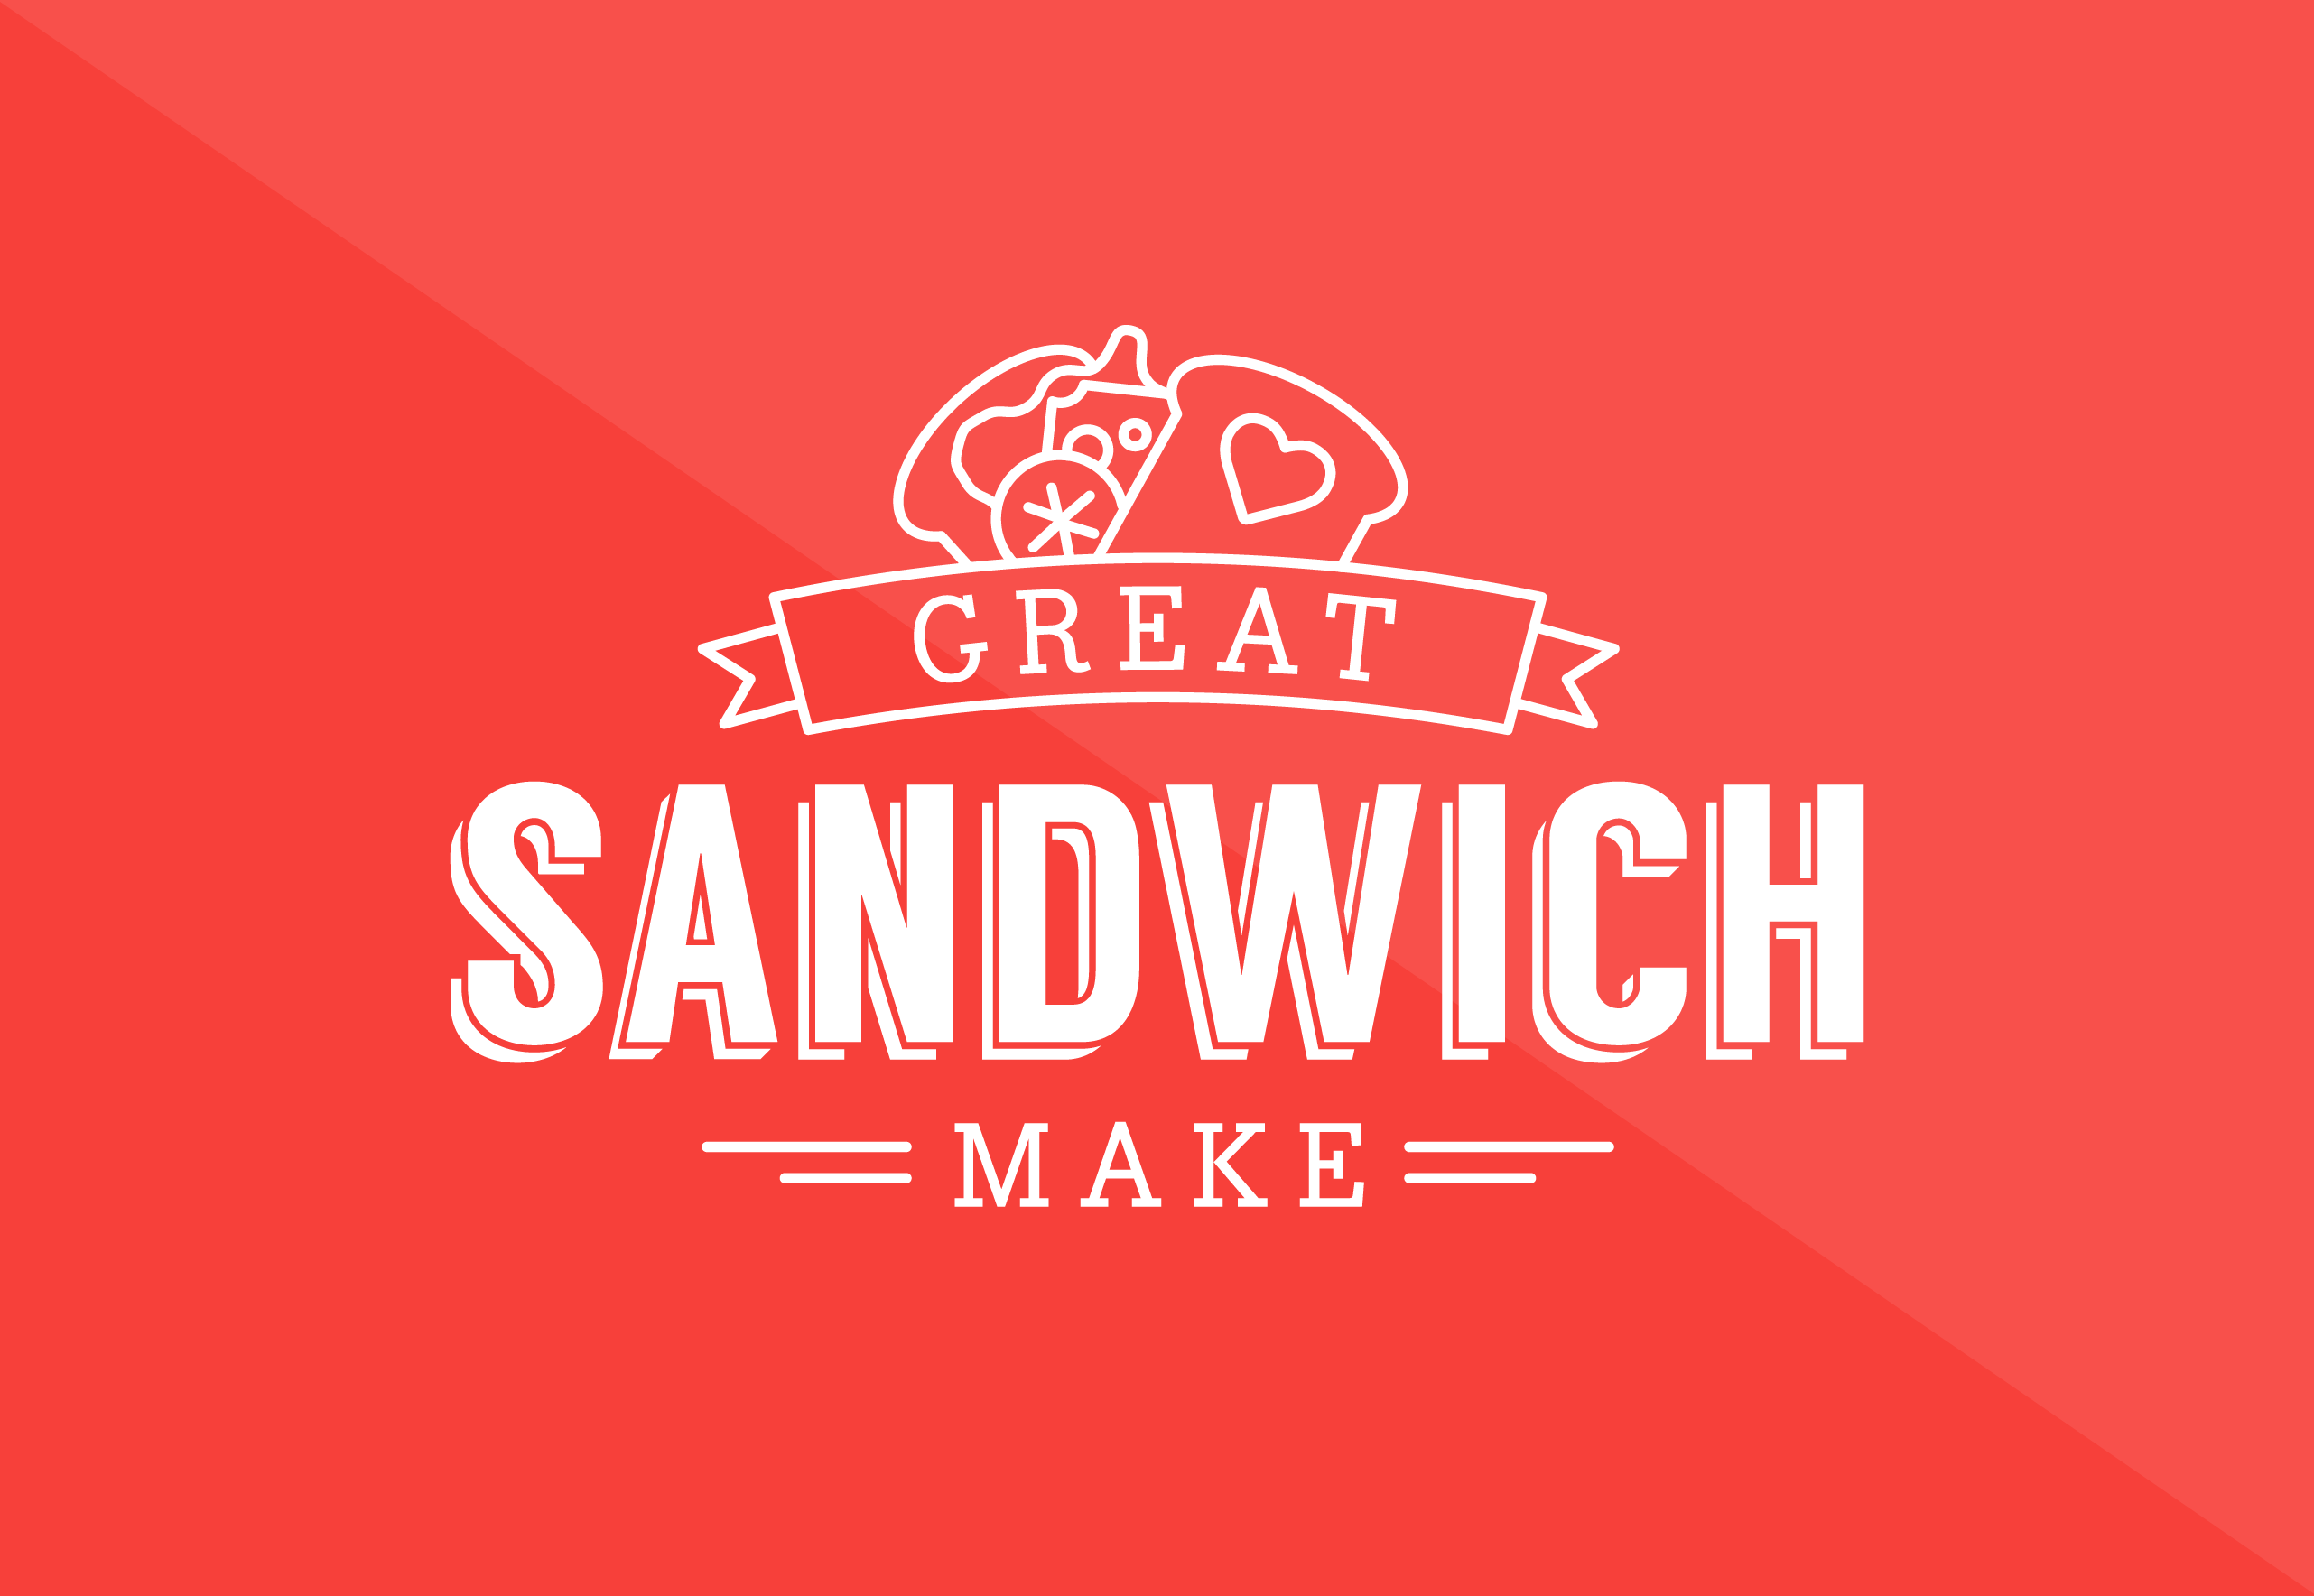 Flipside Creative Community: Every year we run the Great Sandwich Make in Vancouver.